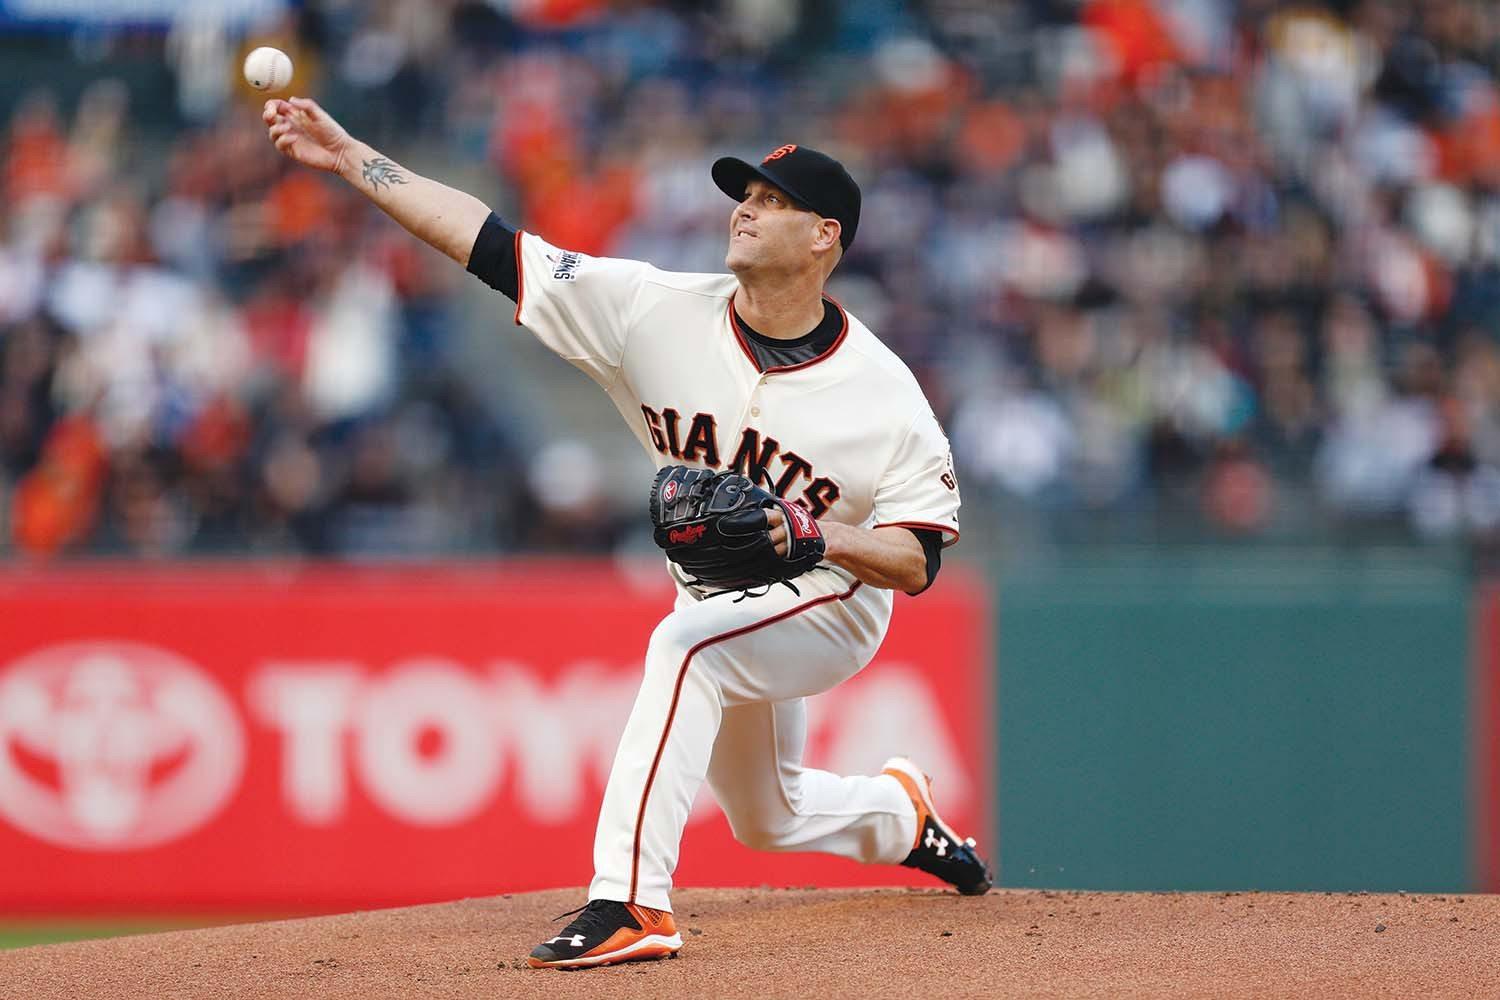 Beck Diefenbach/APGiants starter Tim Hudson continued the team's strong starting pitching in the early season